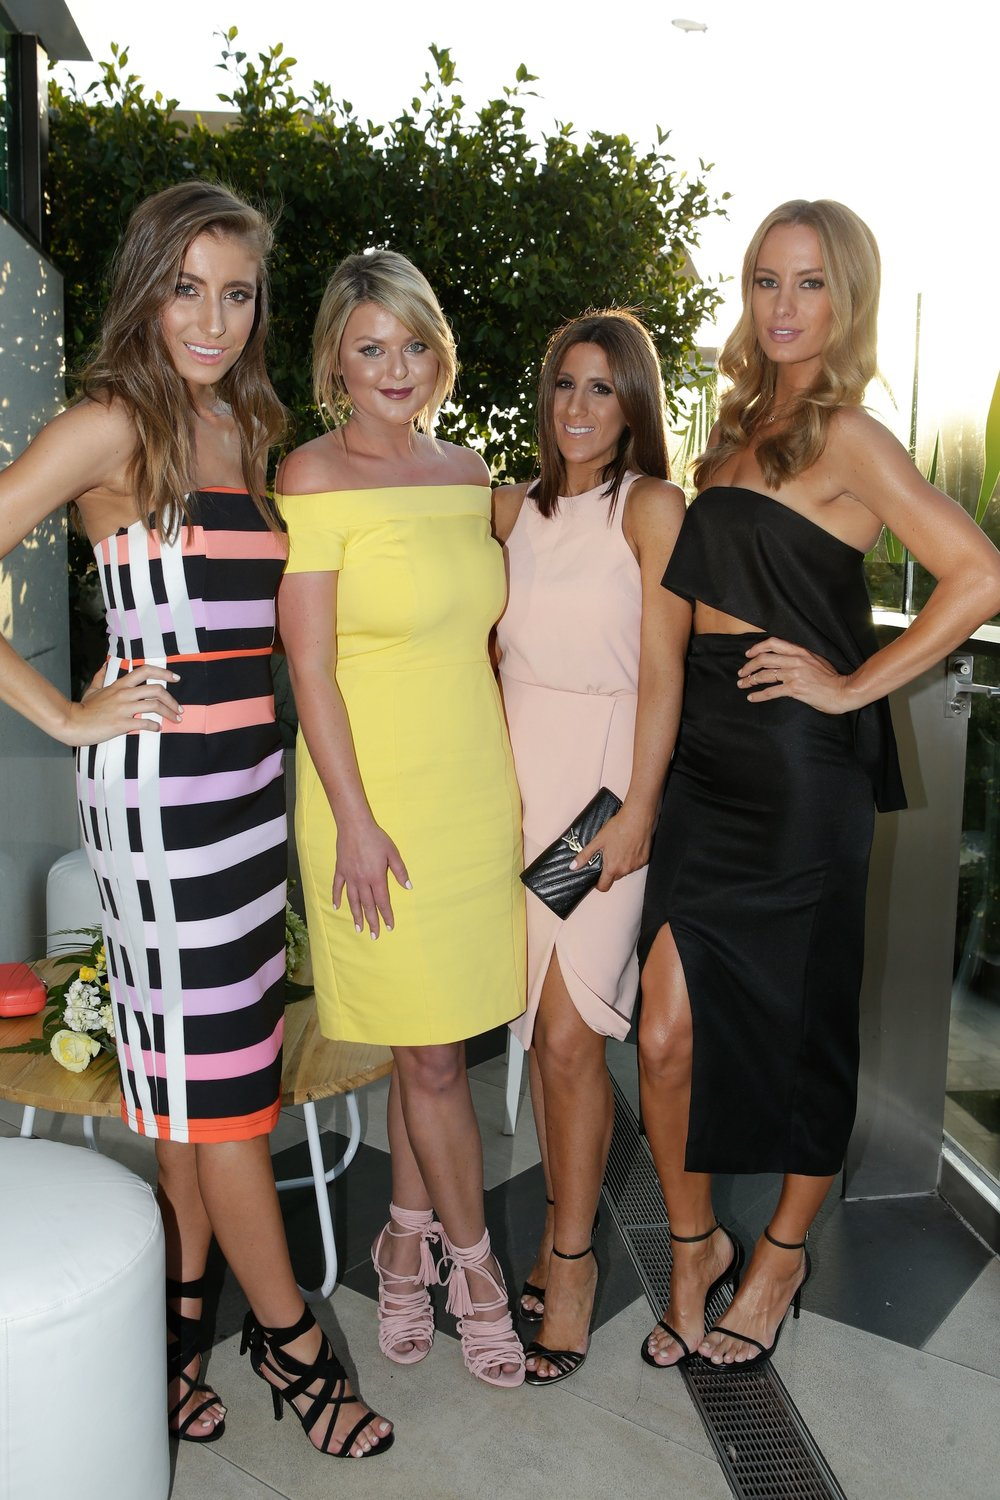 yellowglen-terrace-dinner-rebecca-harding-emma-clapham-lana-wilkinson-and-samantha wills.jpg